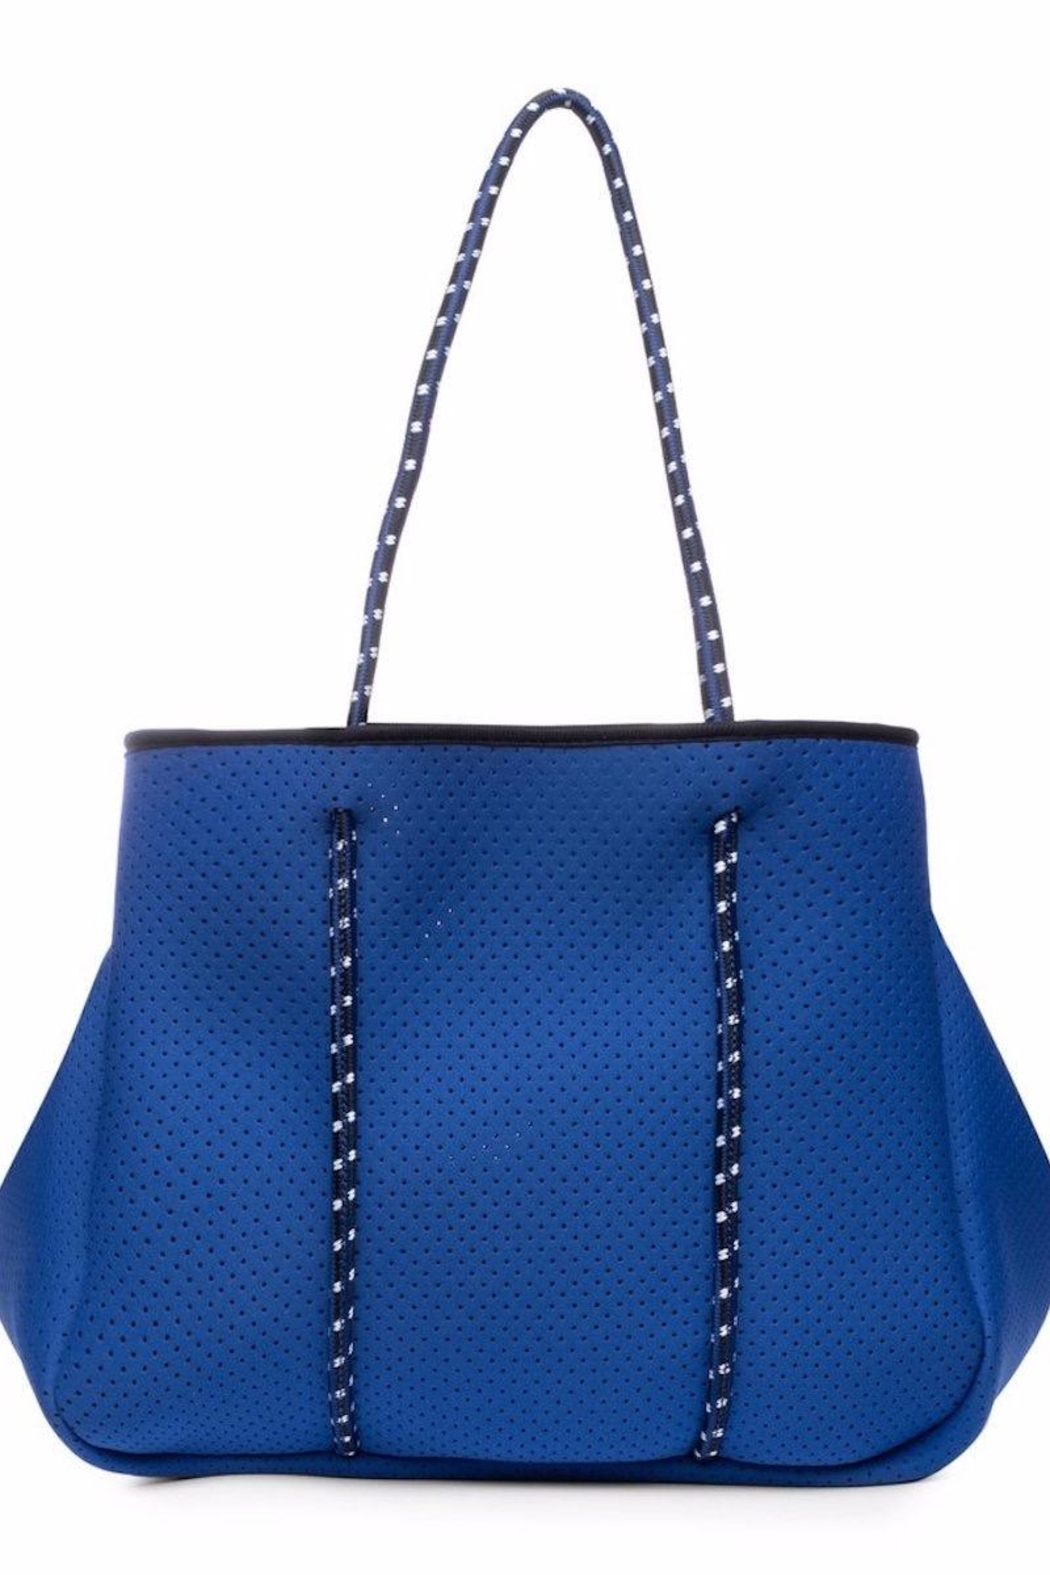 Annabel Ingall Neoprene Tote - Front Full Image